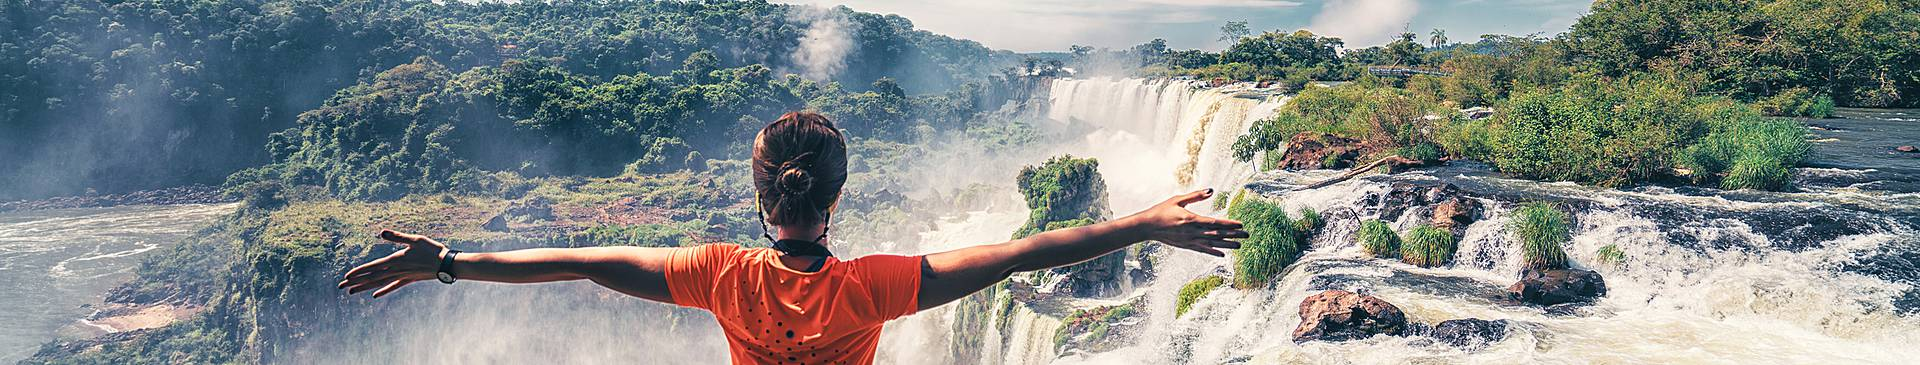 Adventure holidays in Brazil